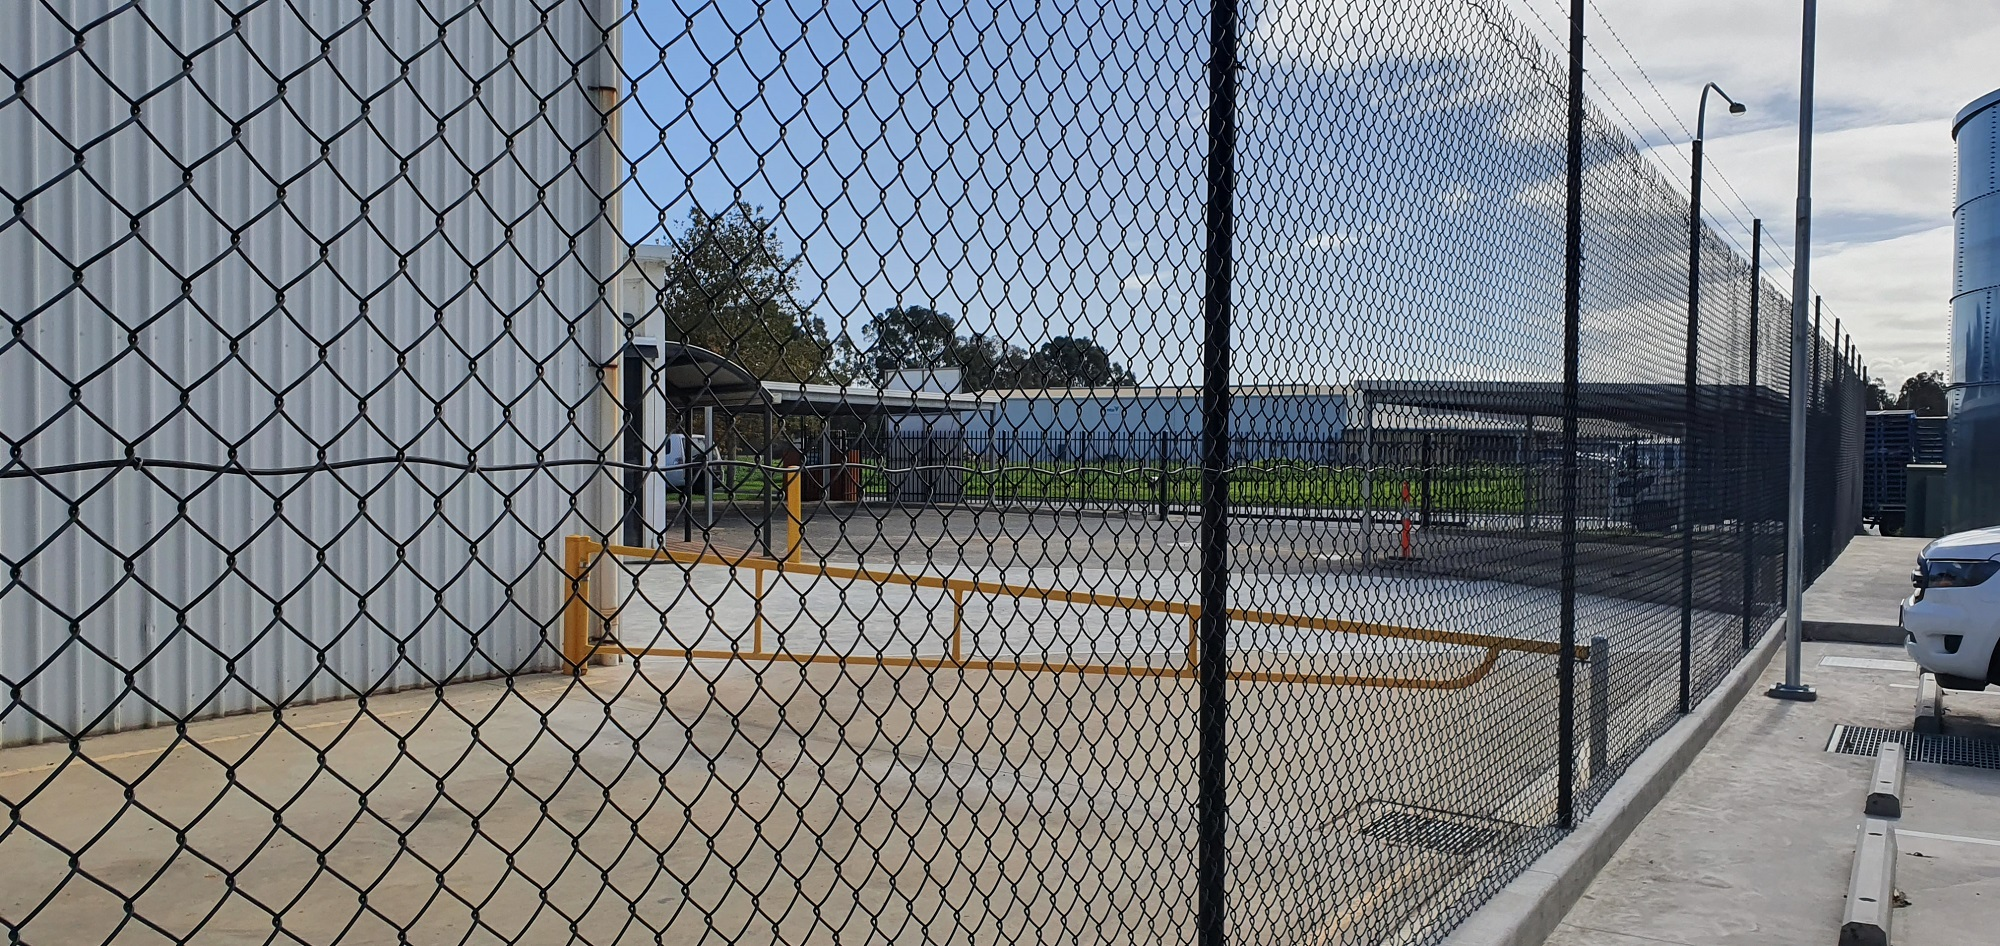 Commercial Fencing Adelaide Fence Centre Chain Mesh Security Fence Wingfield 8